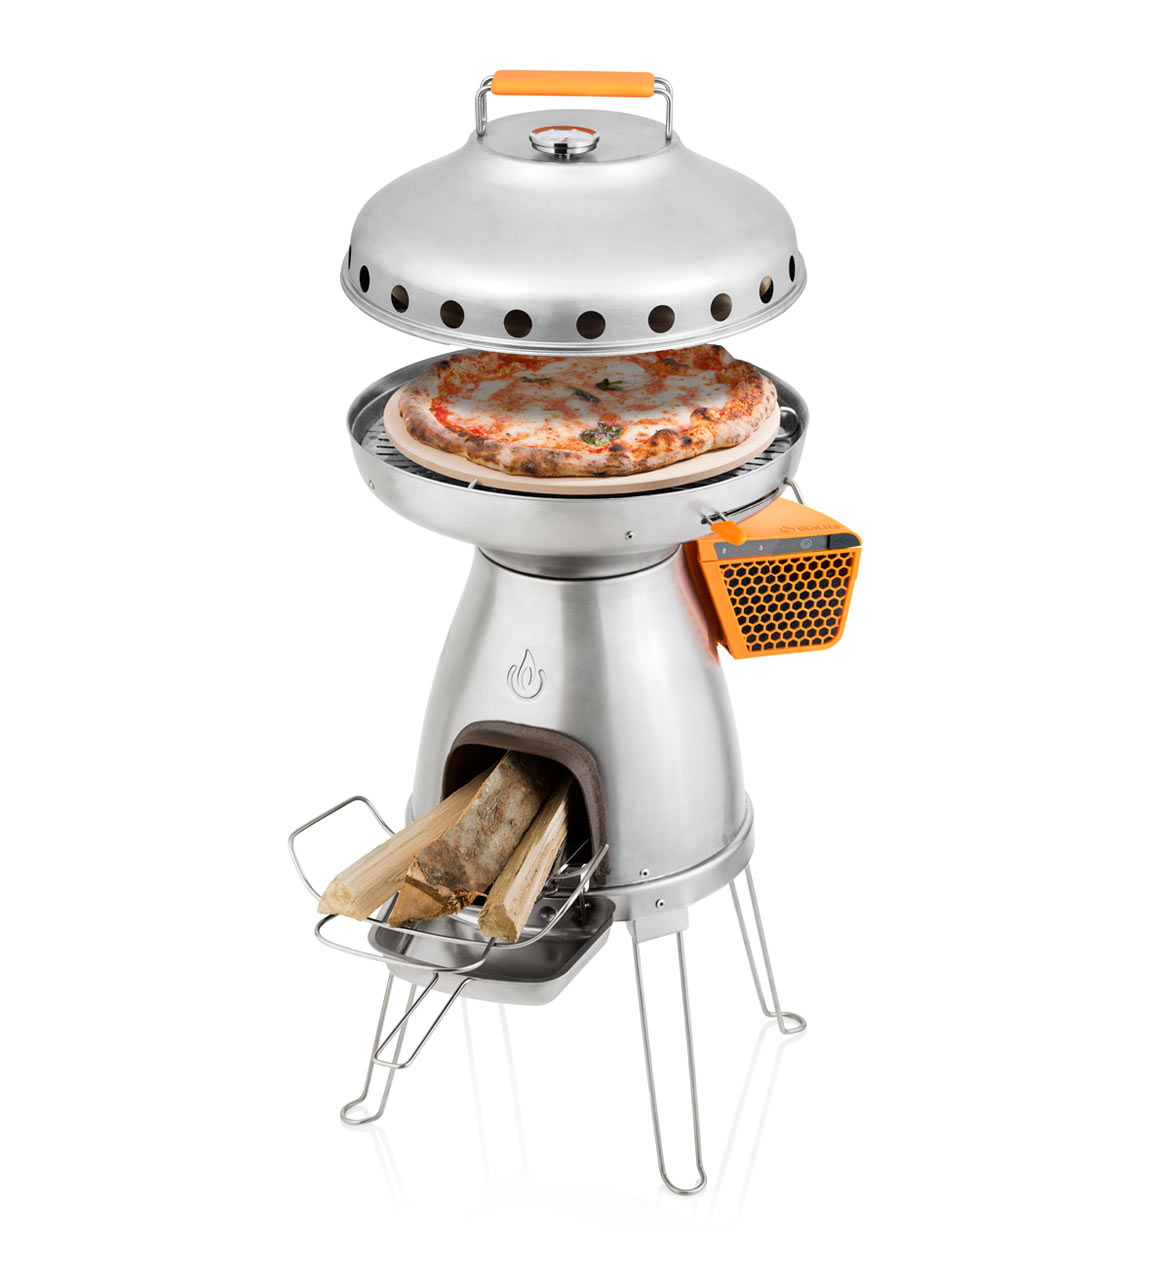 BaseCamp Is A Wood Burning Stove And Grill That Converts Heat Into Usable Electricity